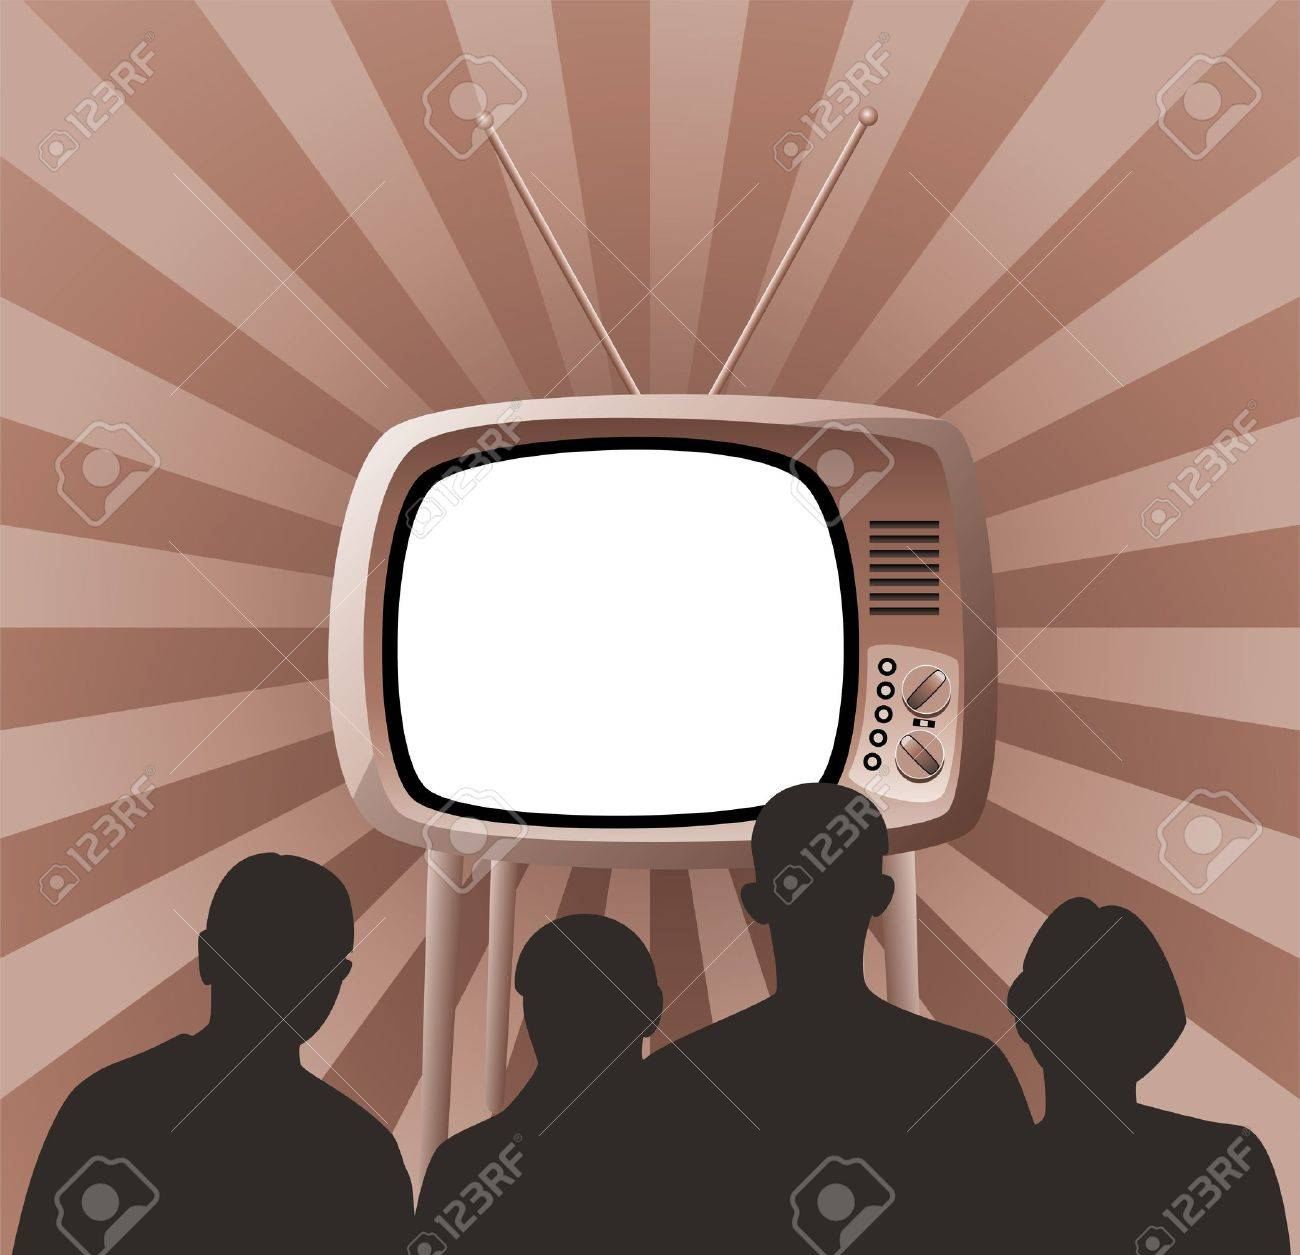 Illustration of family watching retro tv set Stock Vector - 11011525